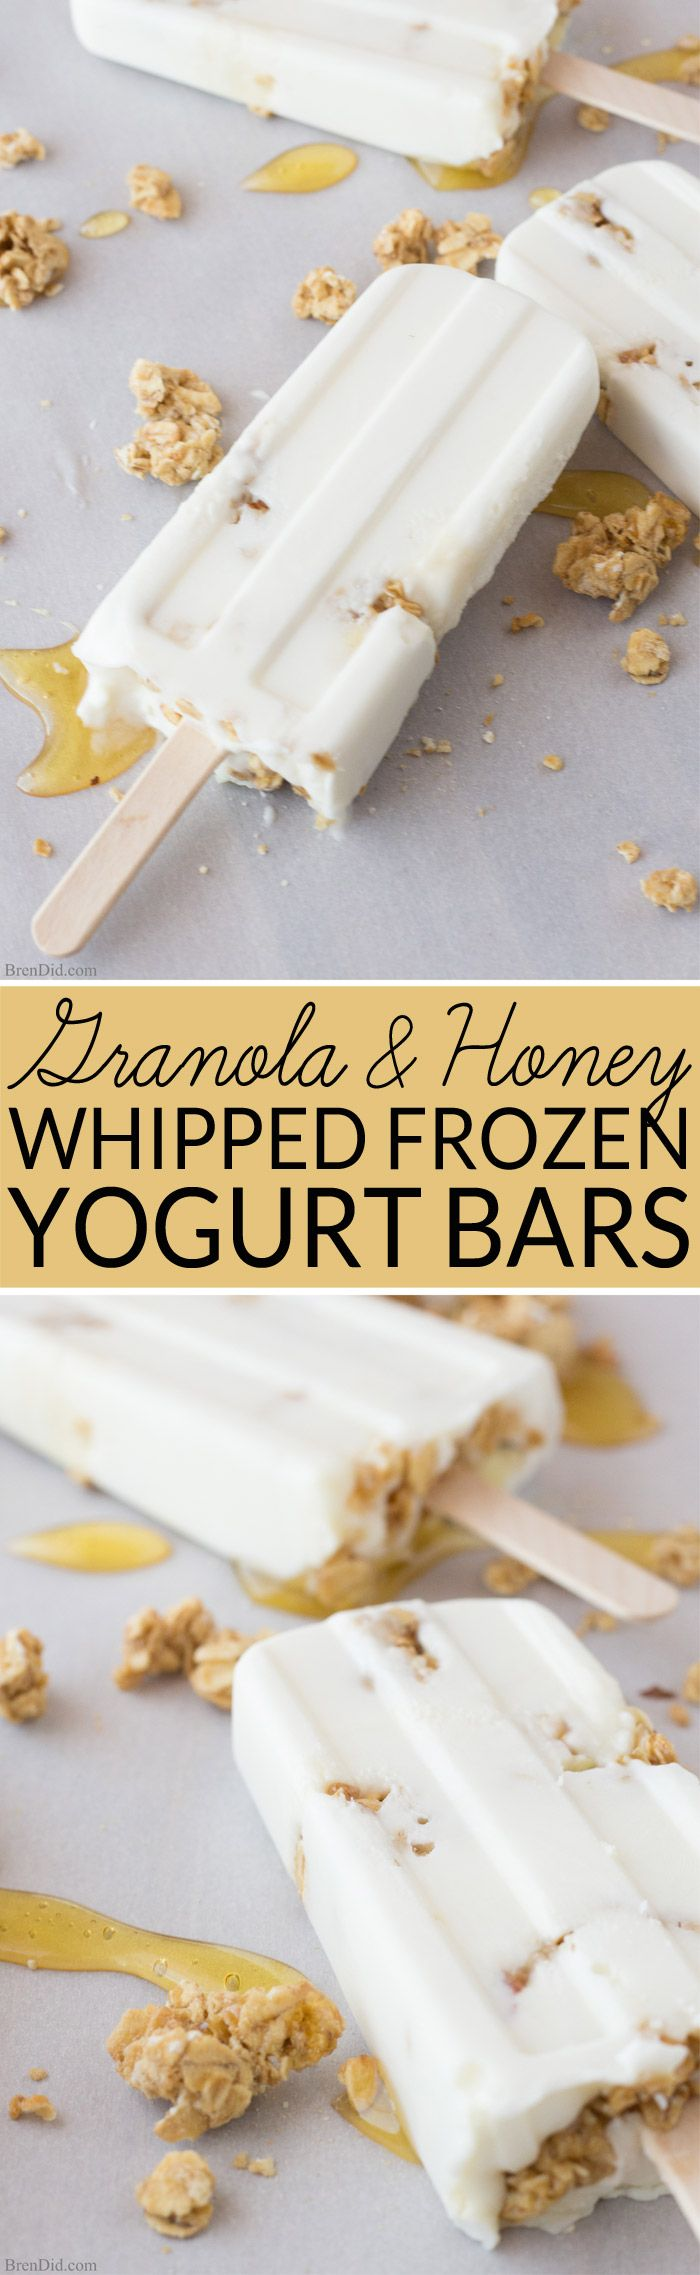 Healthy Frozen Yogurt Bars with Honey and Granola--Super simple to make + a perfect treat for hot summer days! These whipped yogurt bars have a bit of sweet honey and crunchy granola. Serve them for dessert, snacks, or even as breakfast popsicles!